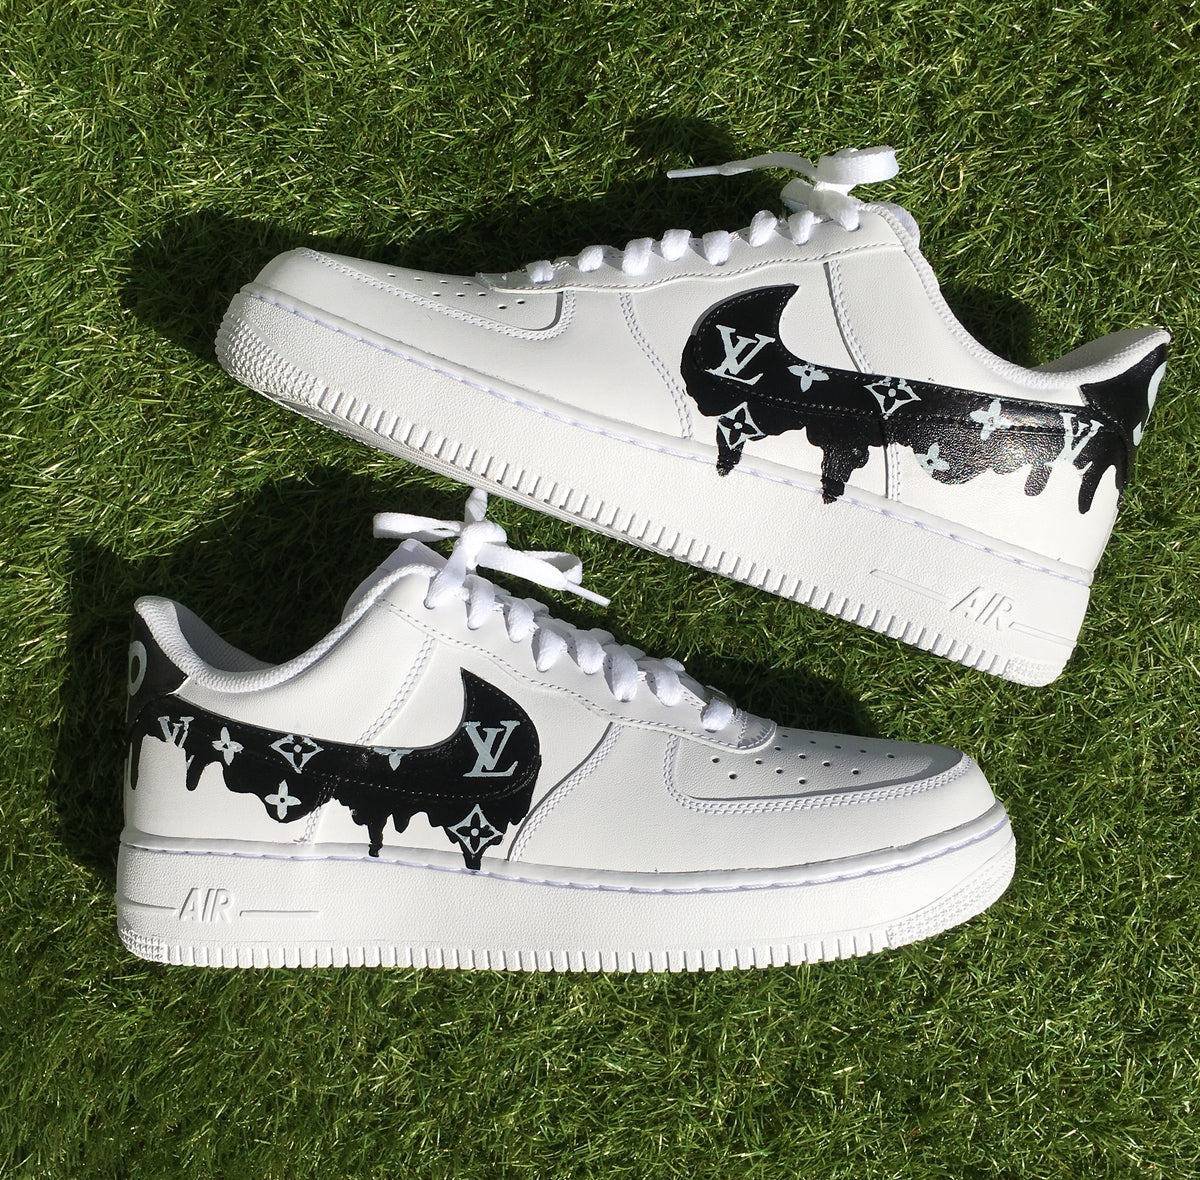 AIR FORCE ONE : BLOOD LV SUPR